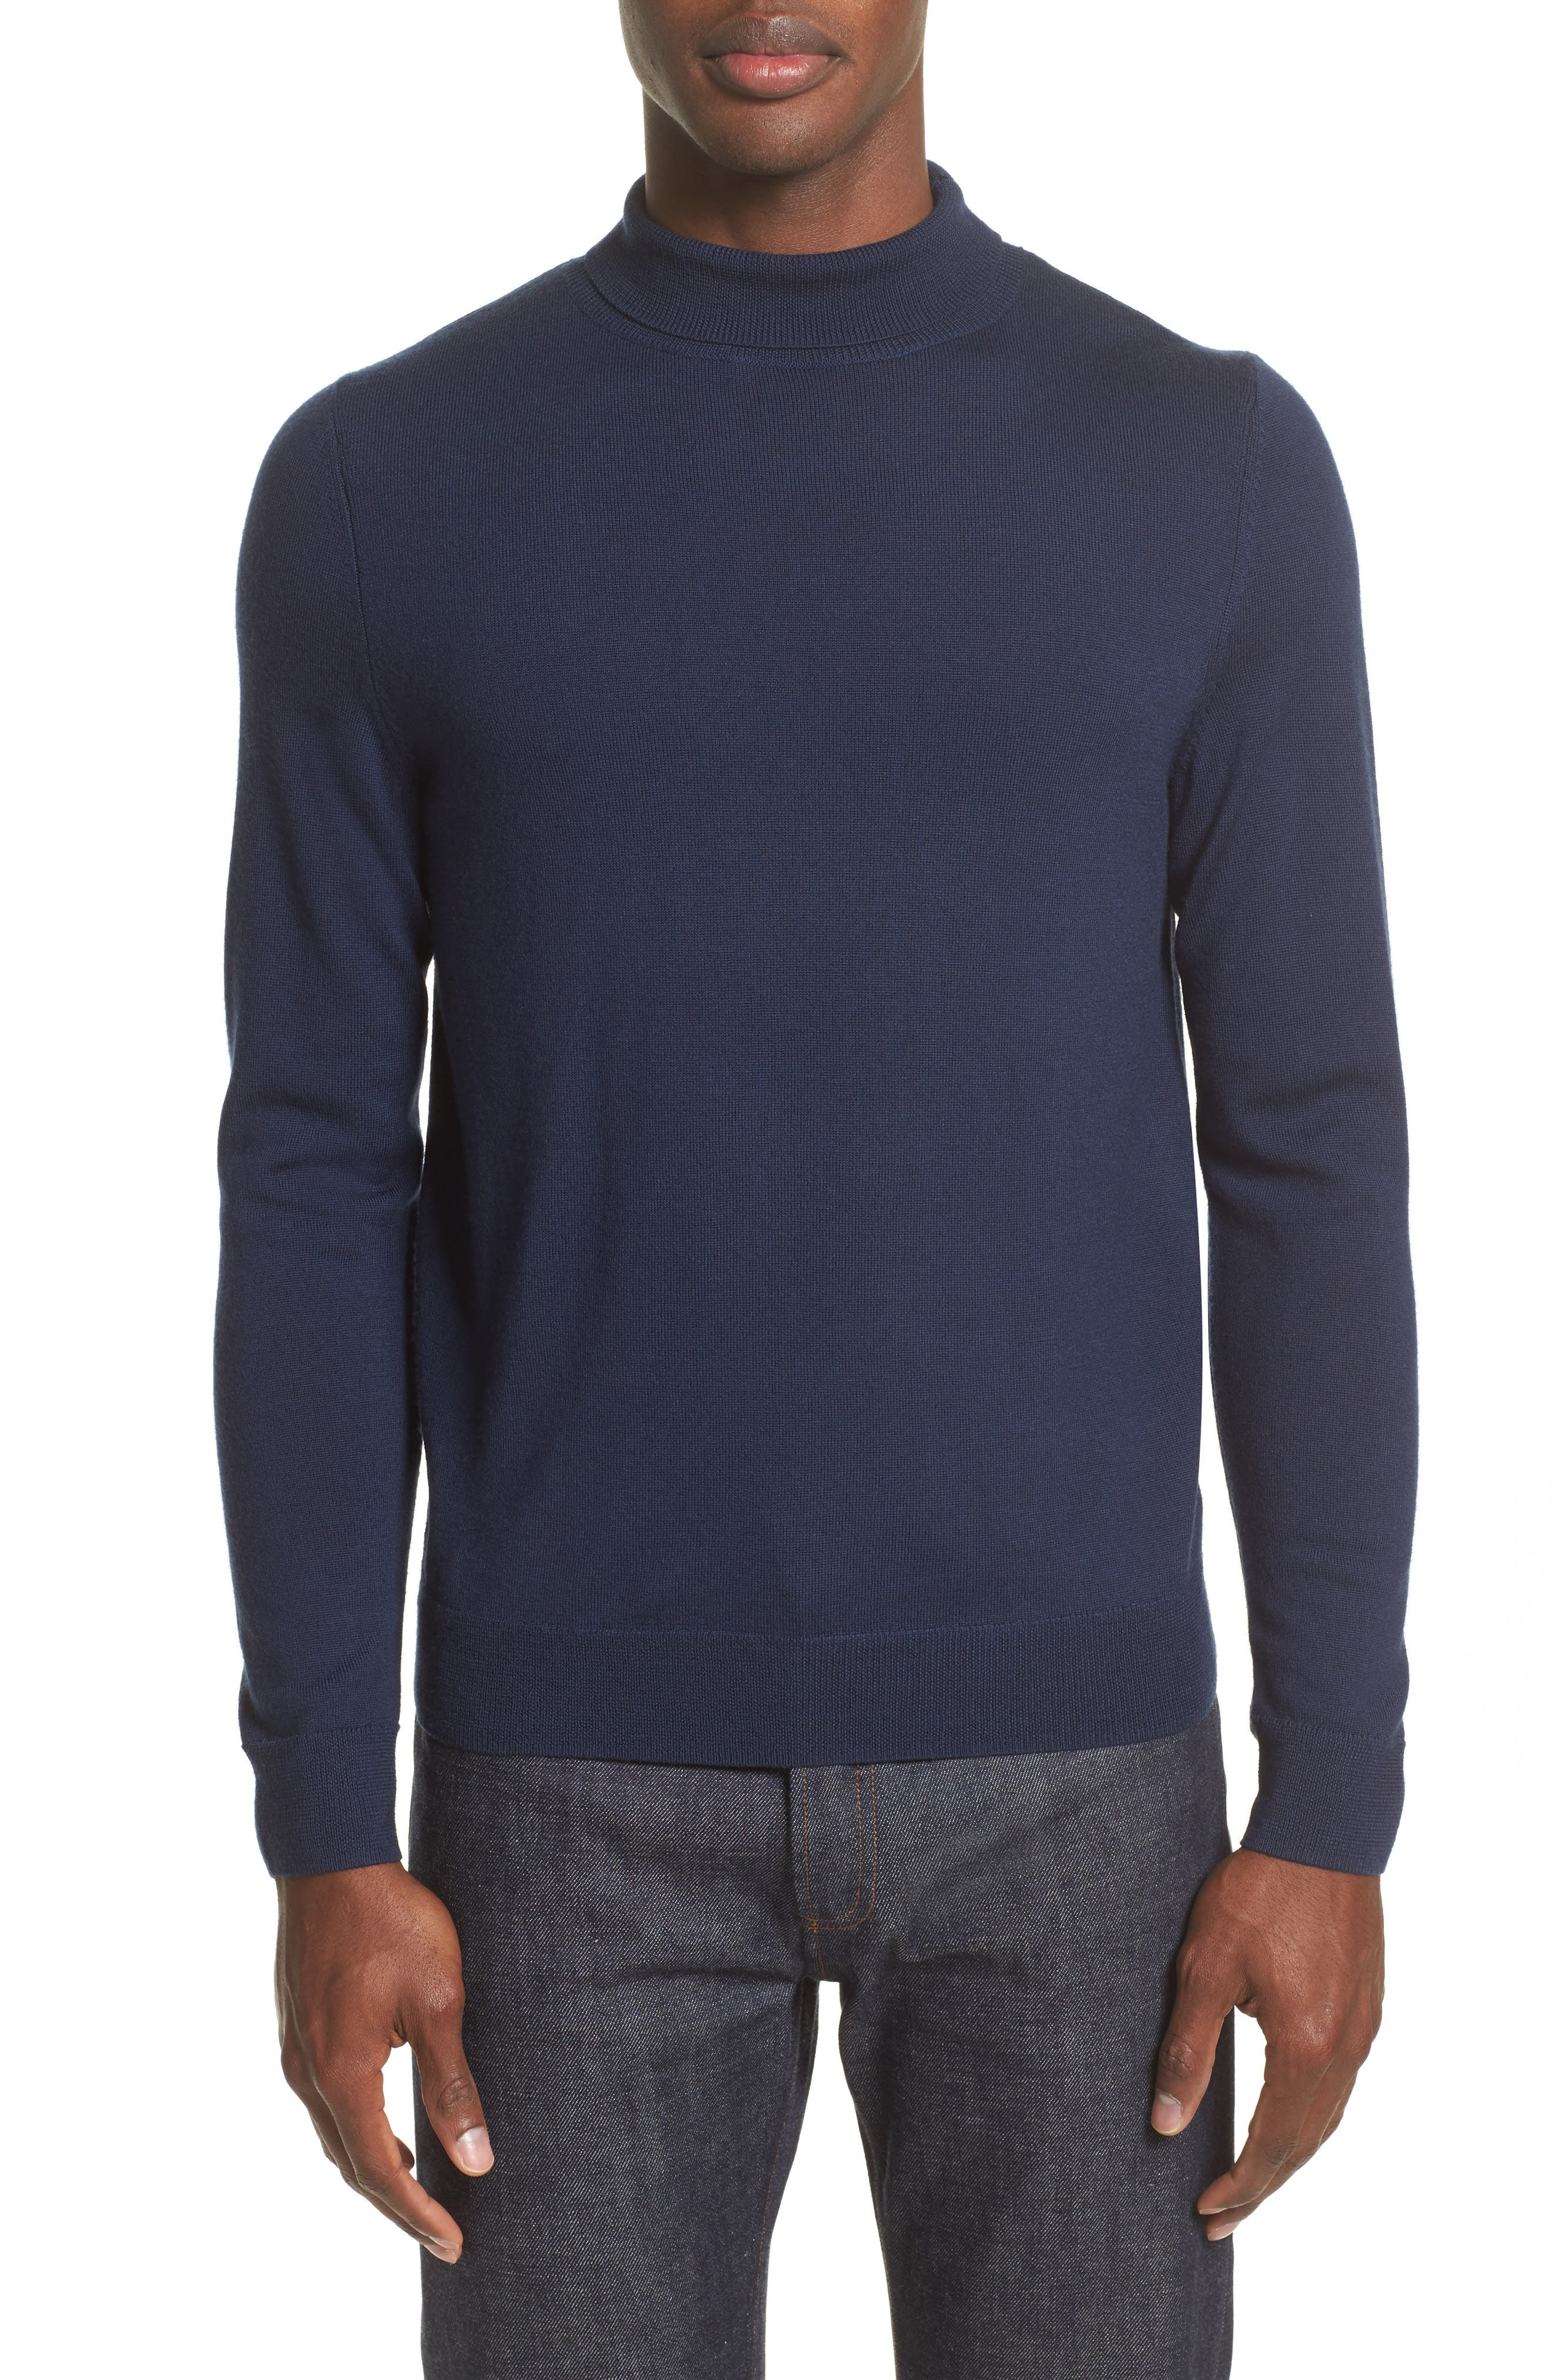 Dundee Mock Neck Sweater,                         Main,                         color, 420